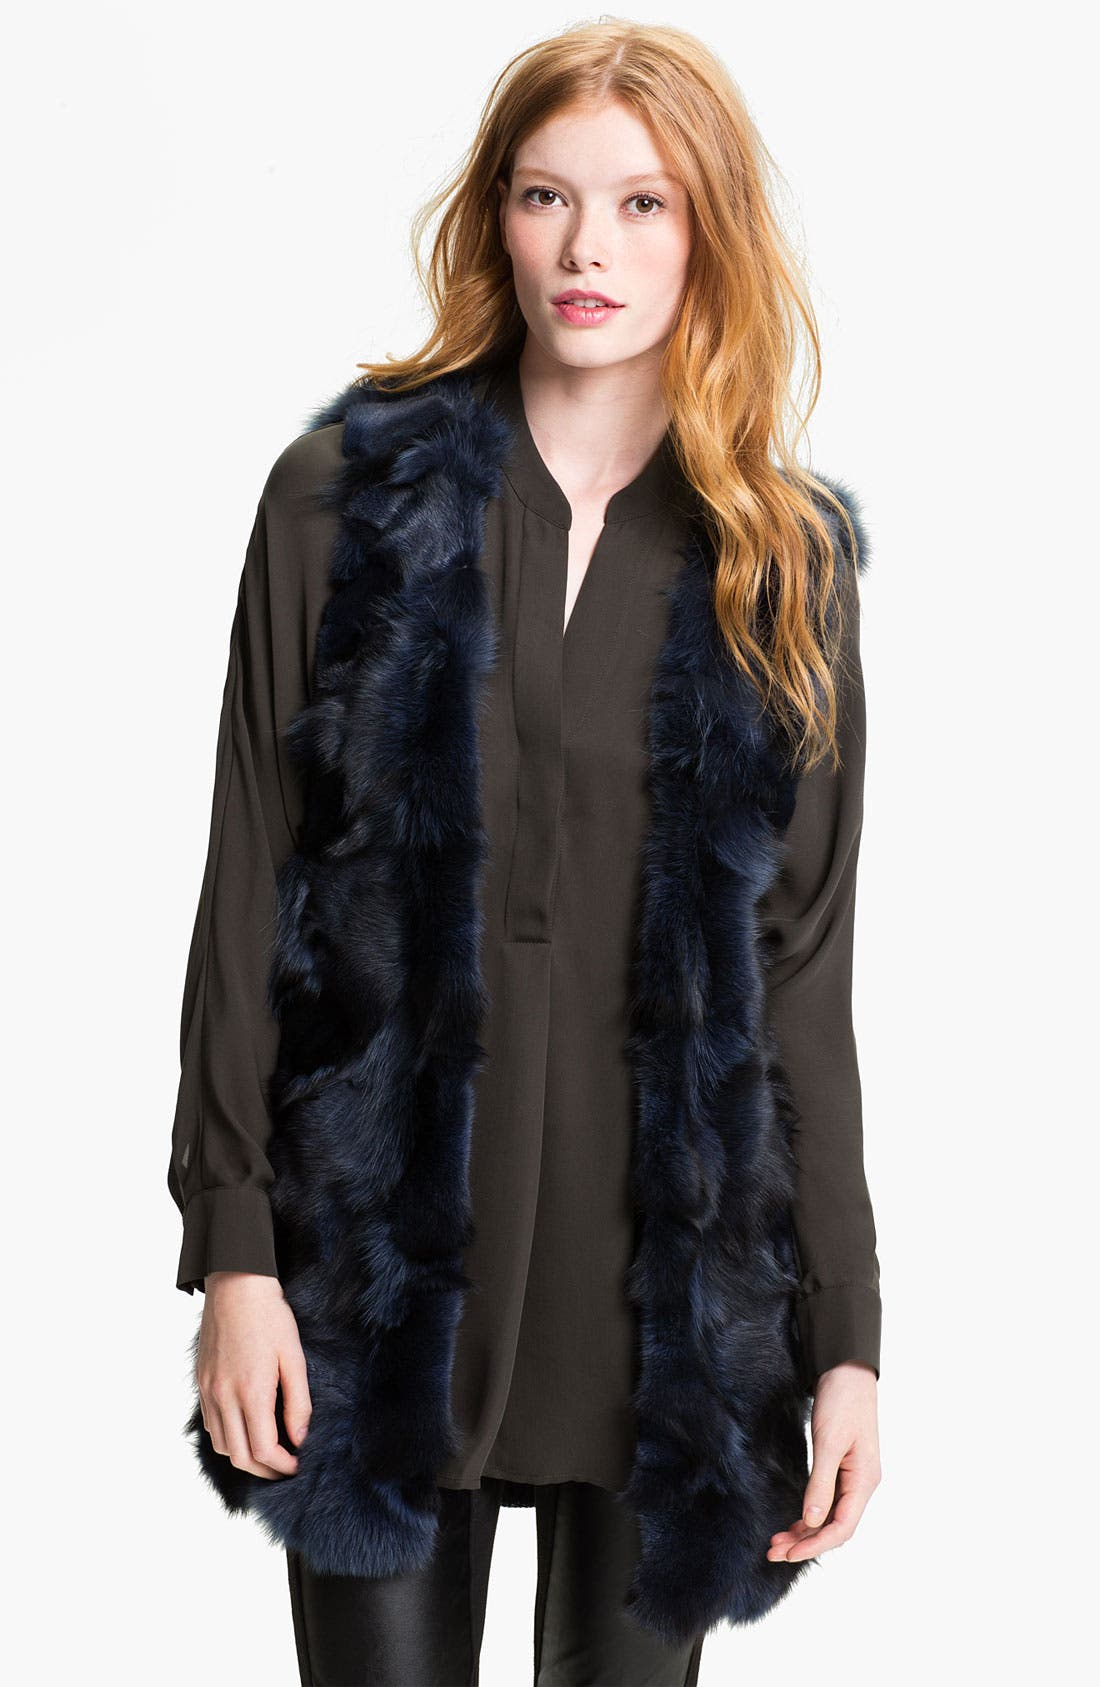 Alternate Image 1 Selected - Alberto Makali Genuine Fox Fur & Knit Vest (Online Exclusive)